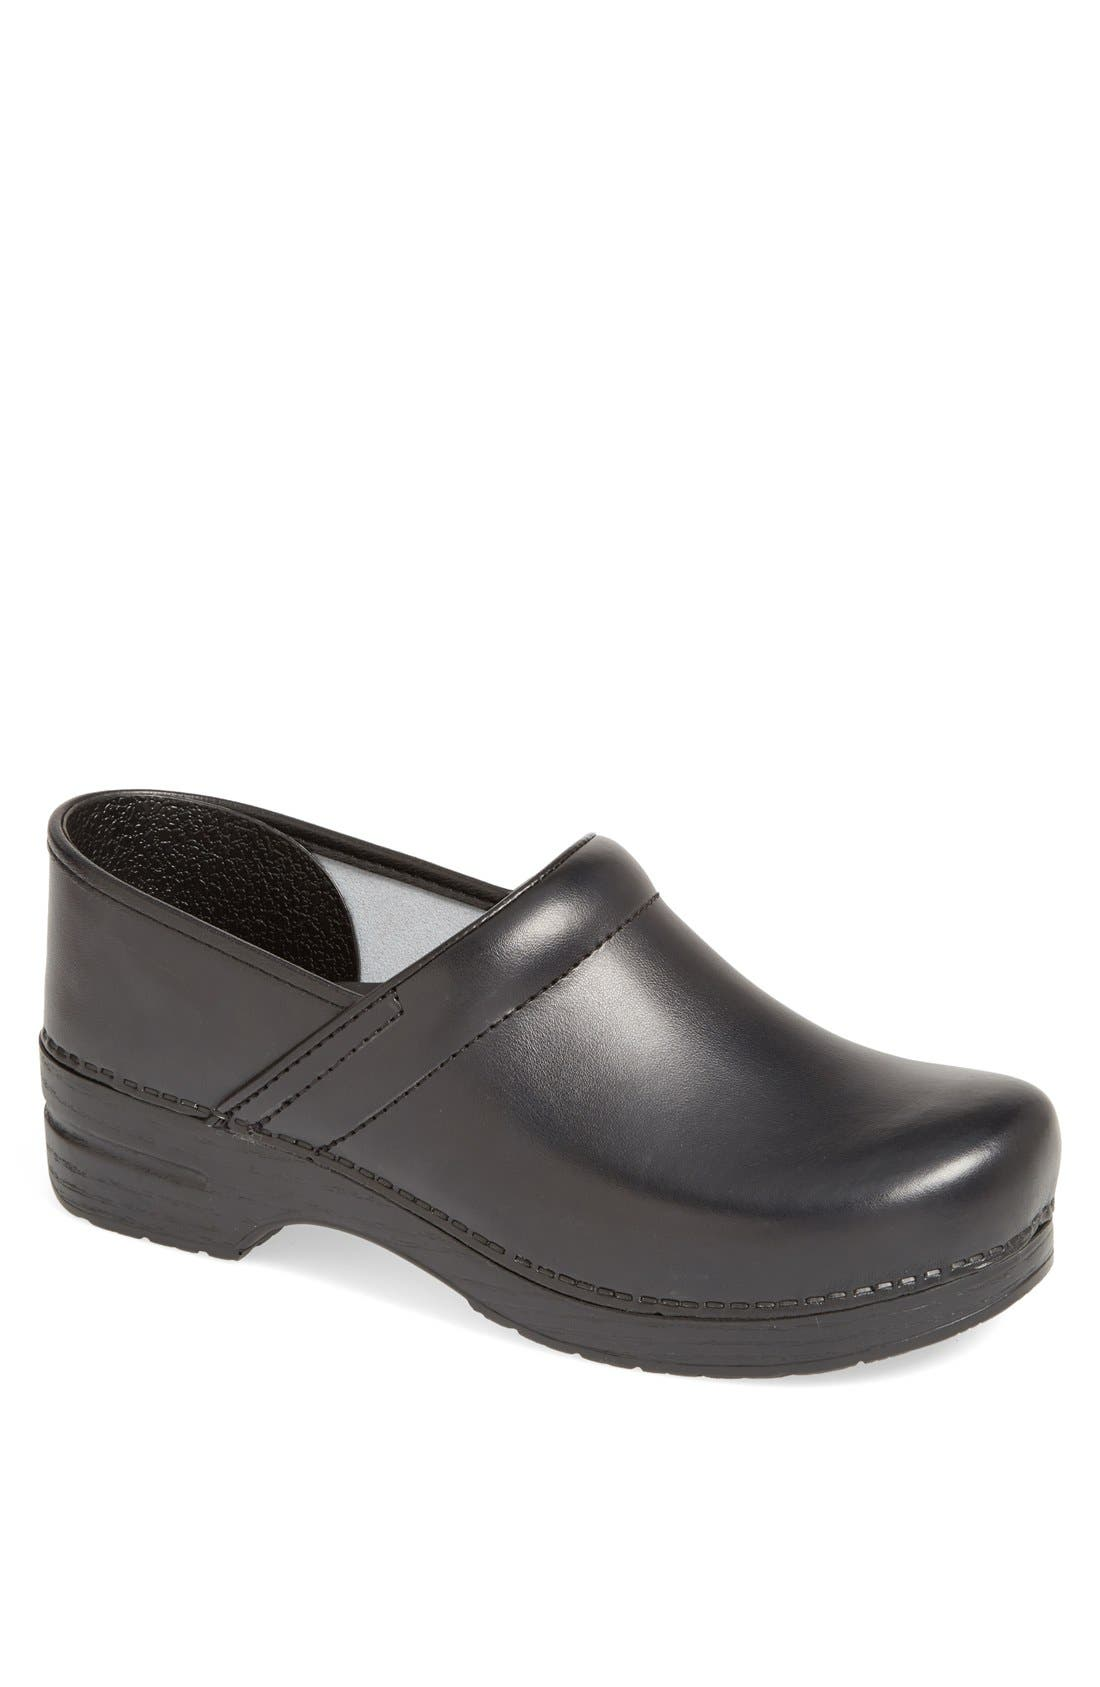 DANSKO,                             'Professional' Slip-On,                             Main thumbnail 1, color,                             BLACK BOX